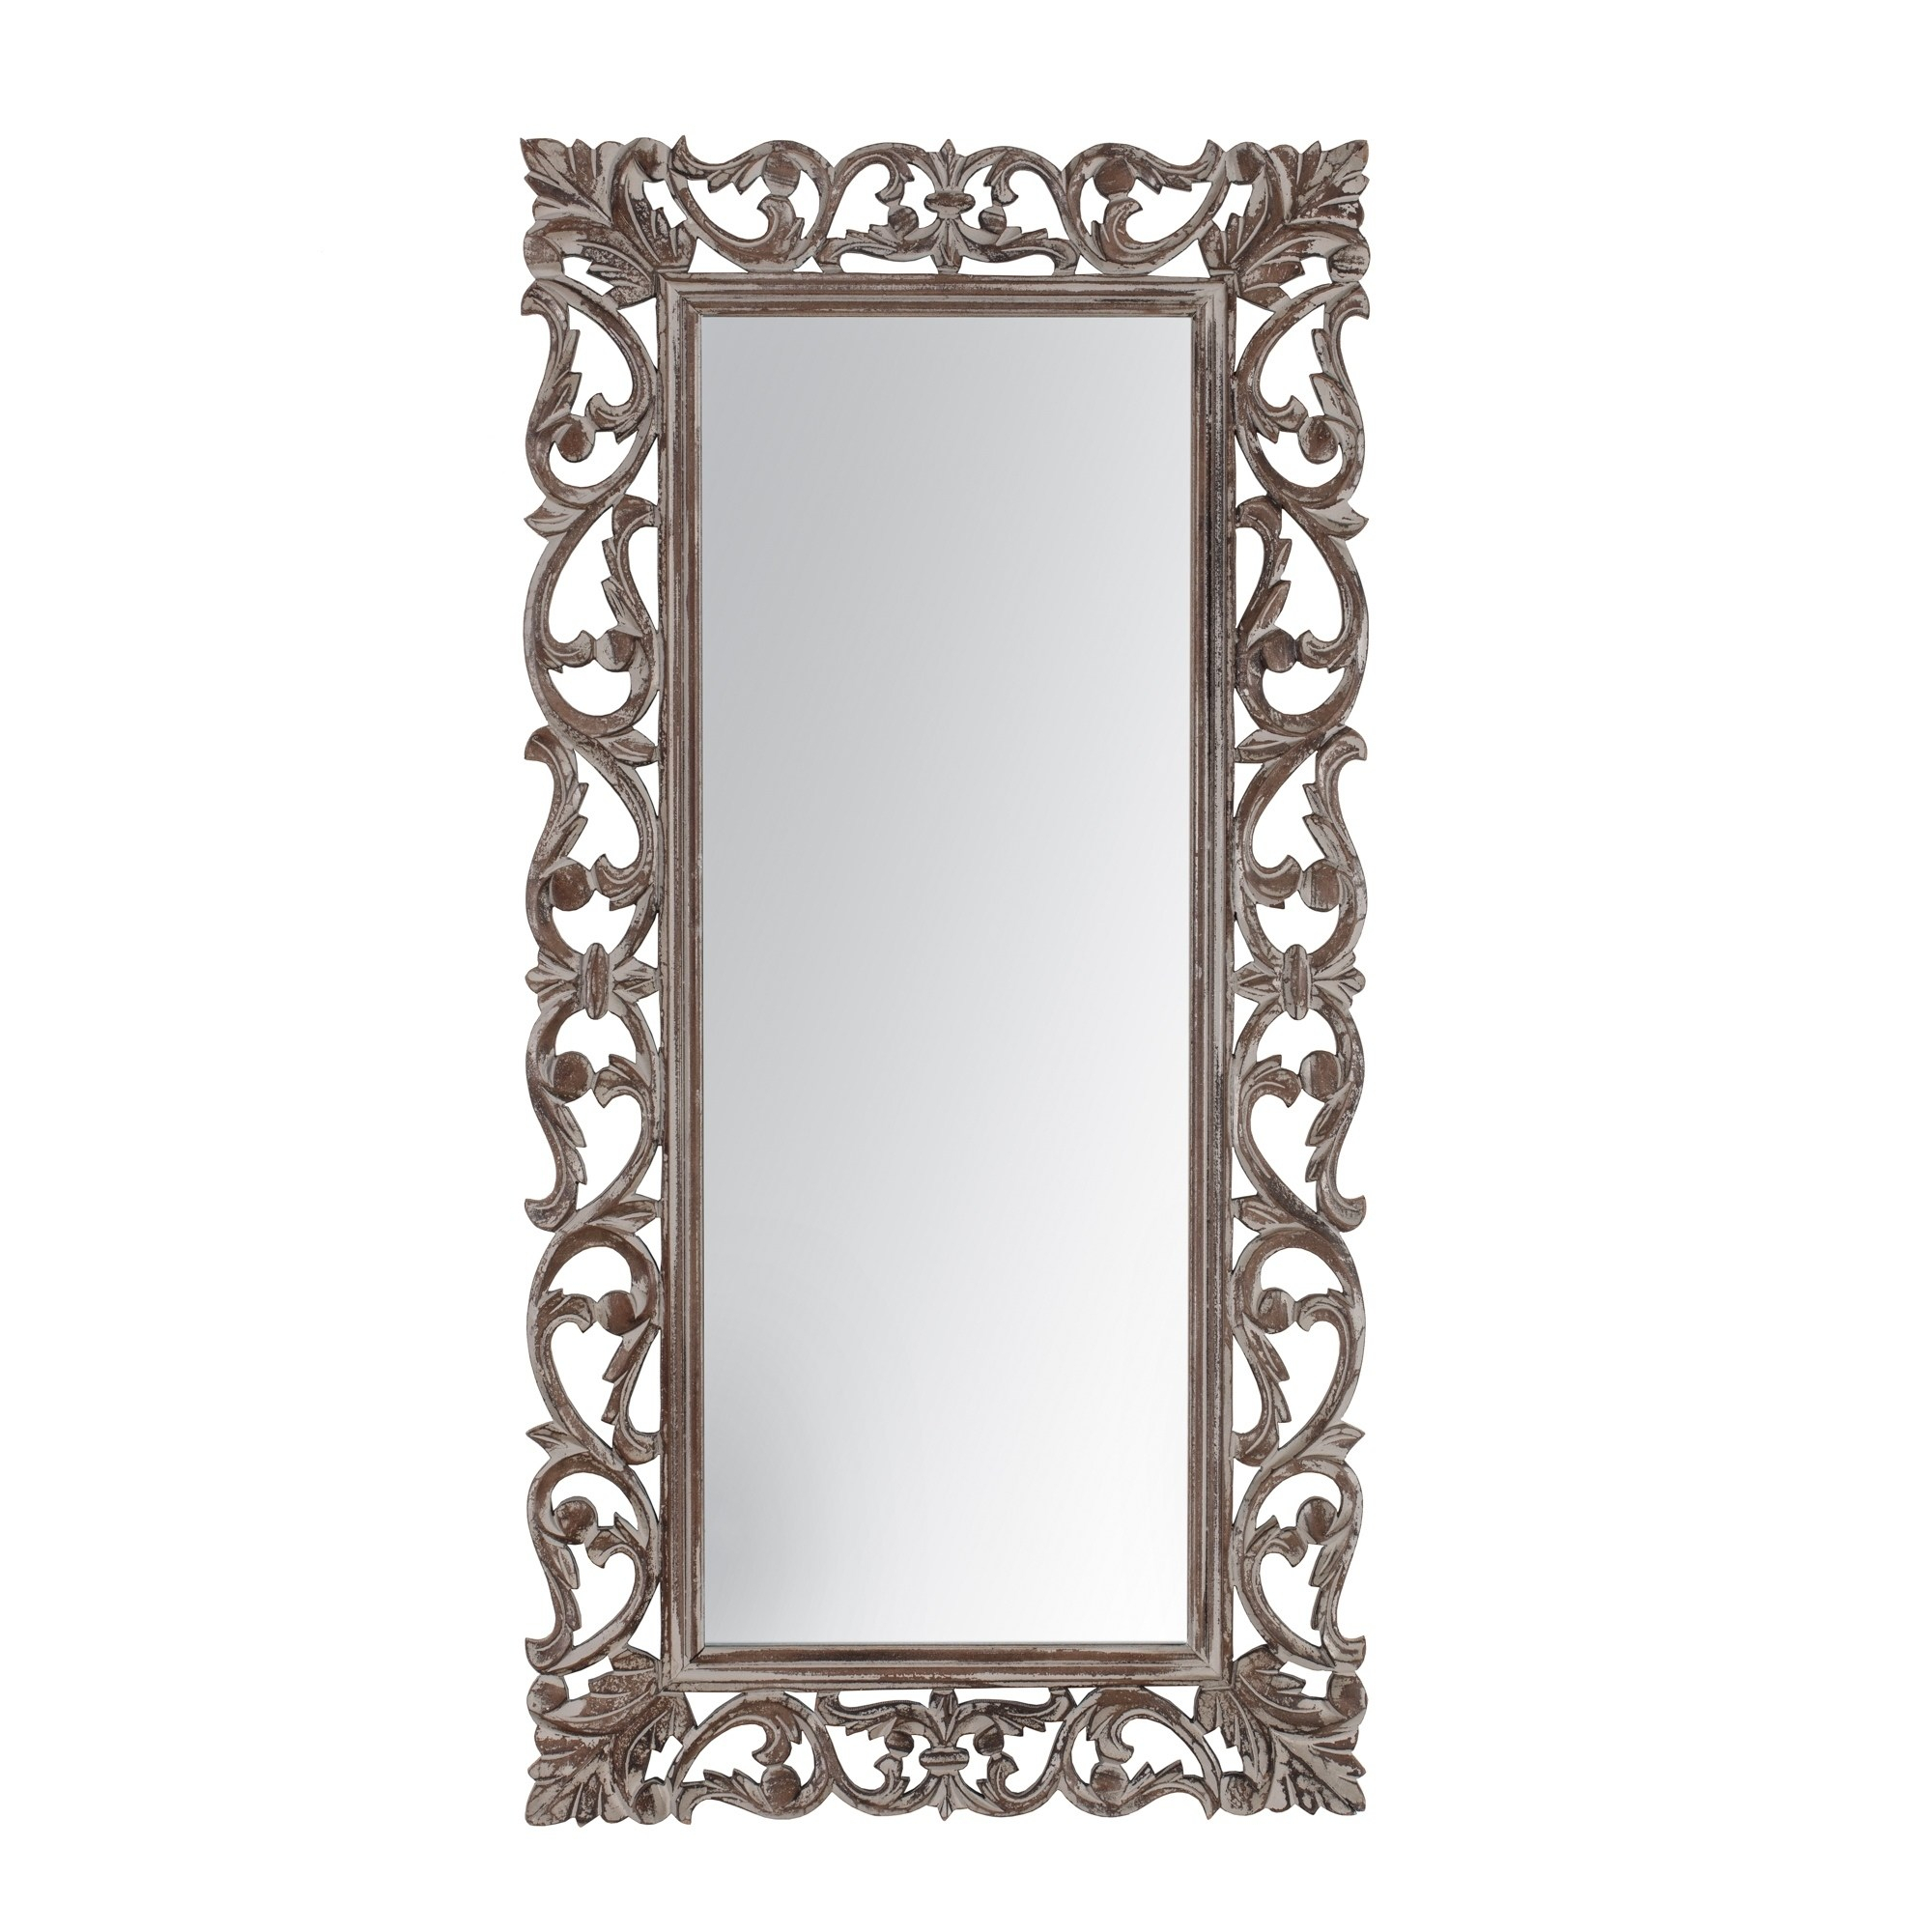 """Passo Grey Carved Mirror 18""""x36"""" – A/n, Gray, Madeleine Home In Dedrick Decorative Framed Modern And Contemporary Wall Mirrors (Image 15 of 20)"""